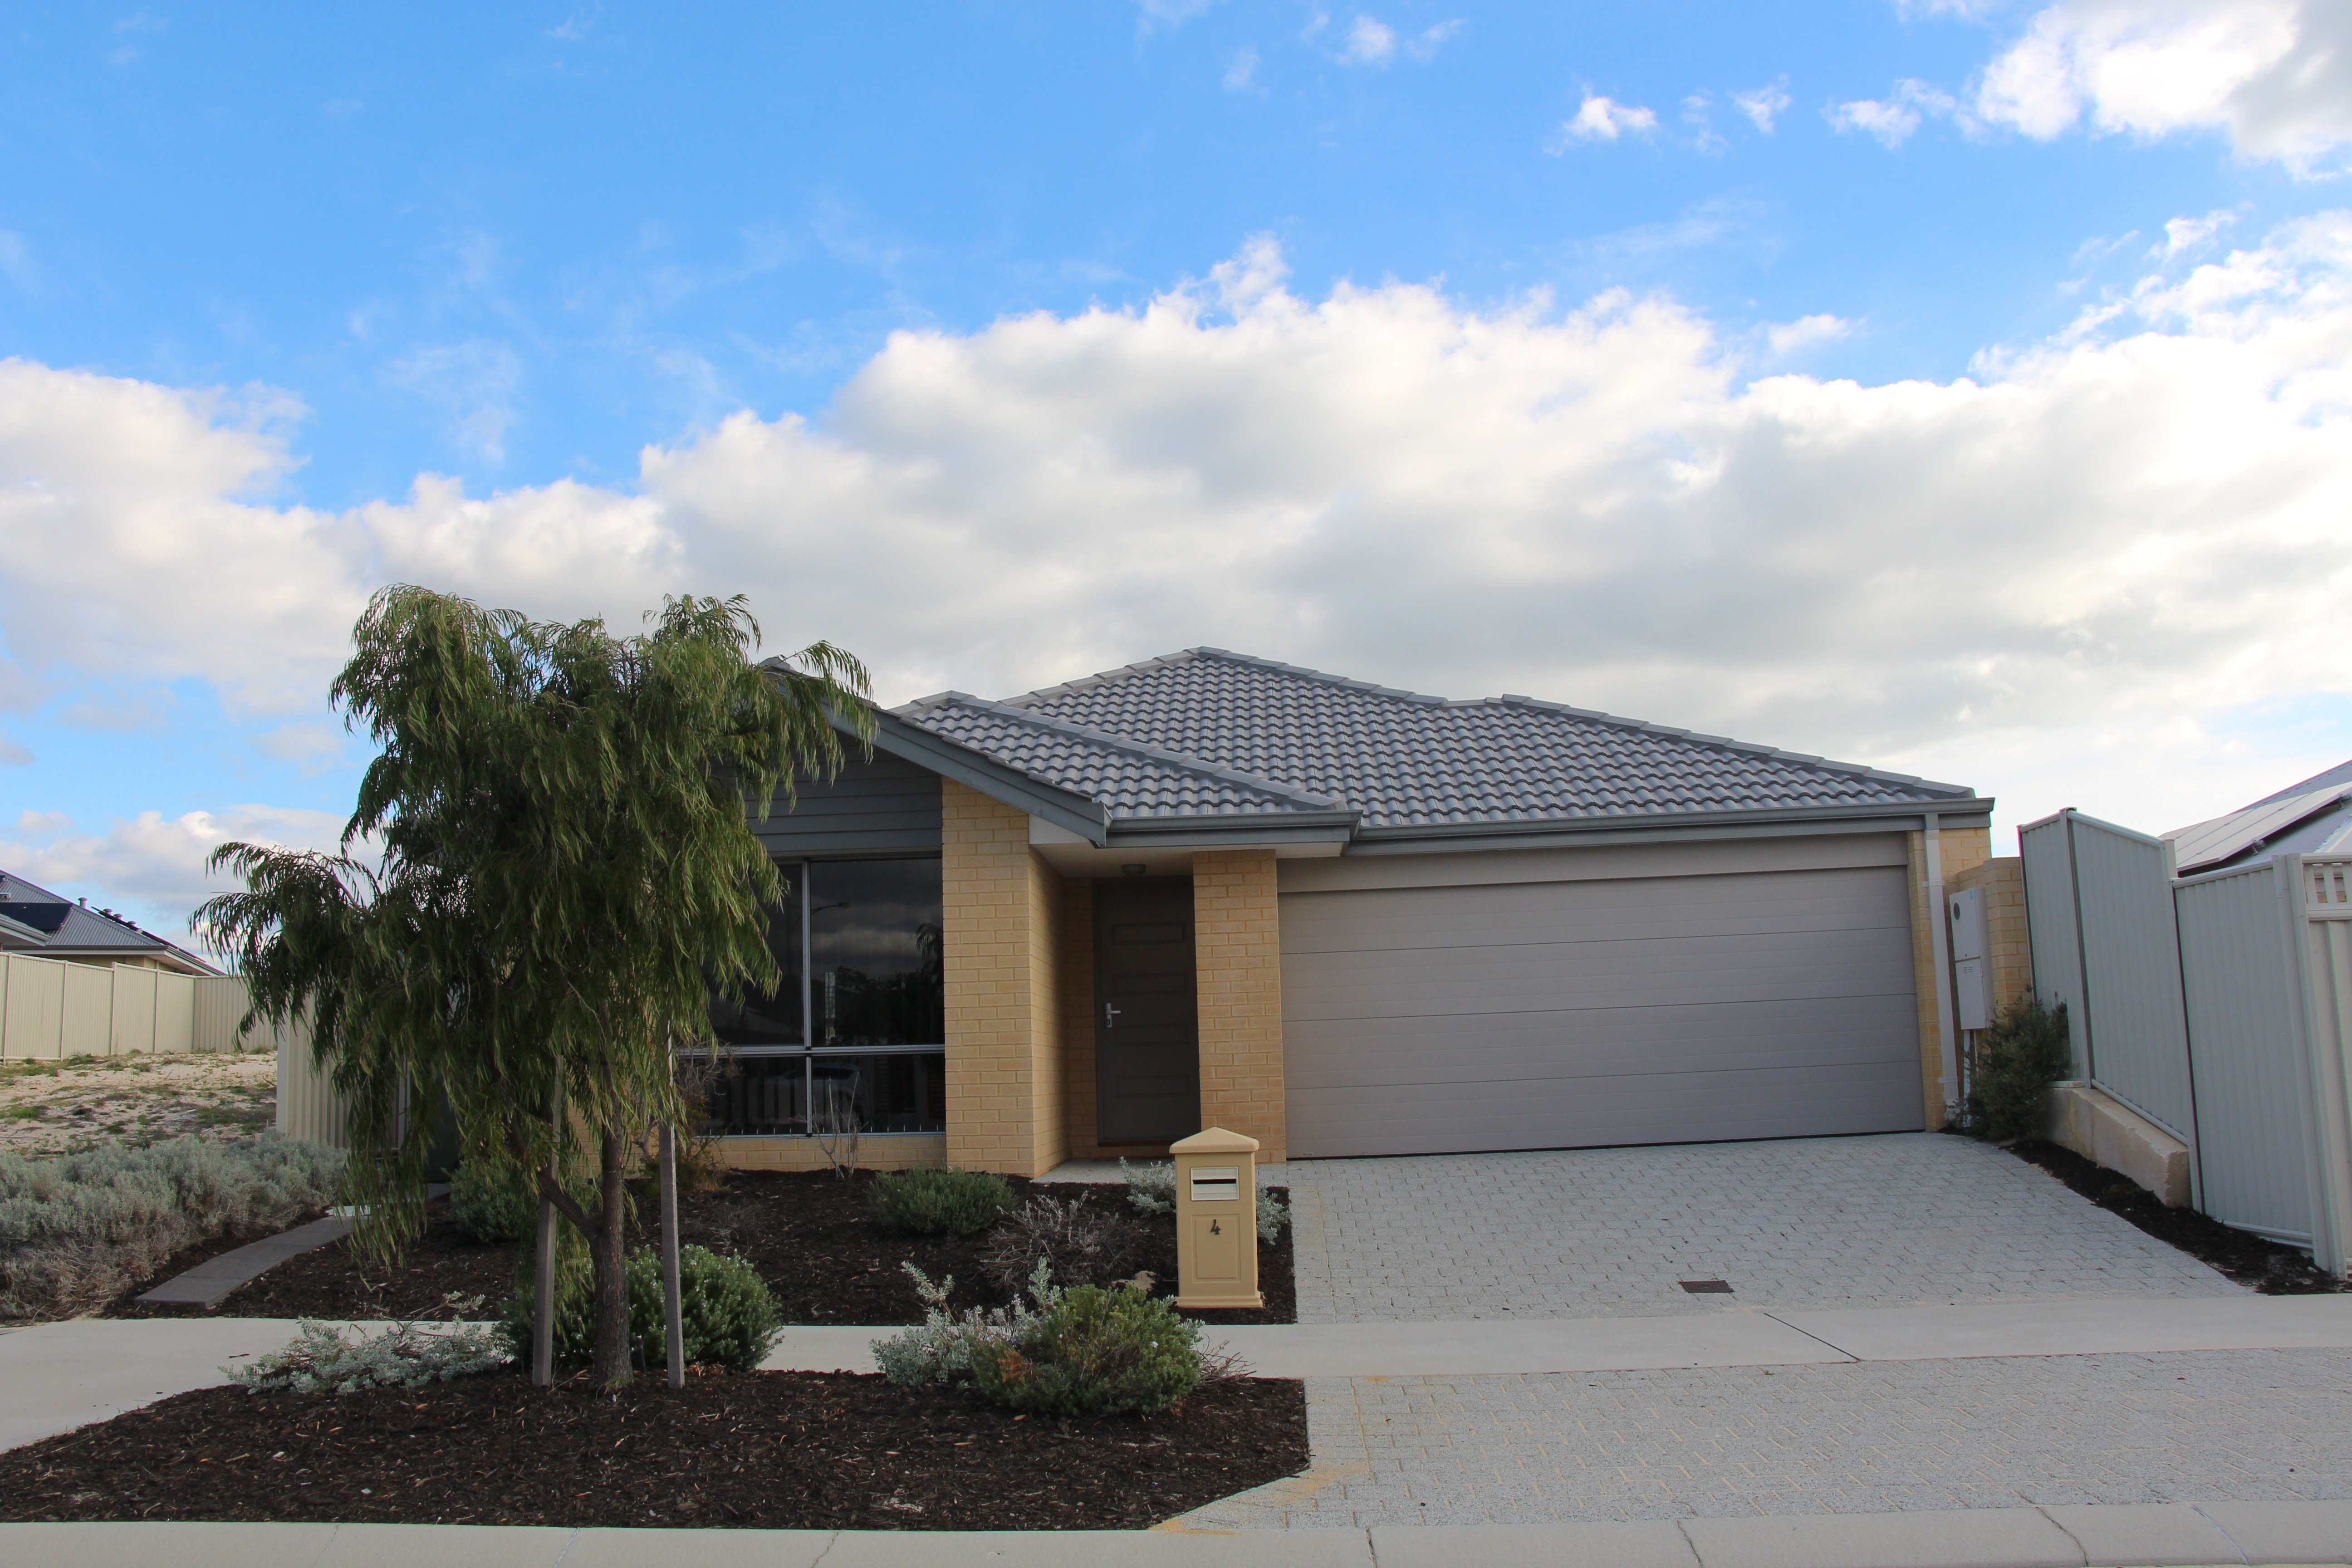 Family home with ducted air conditioning and solar panels.